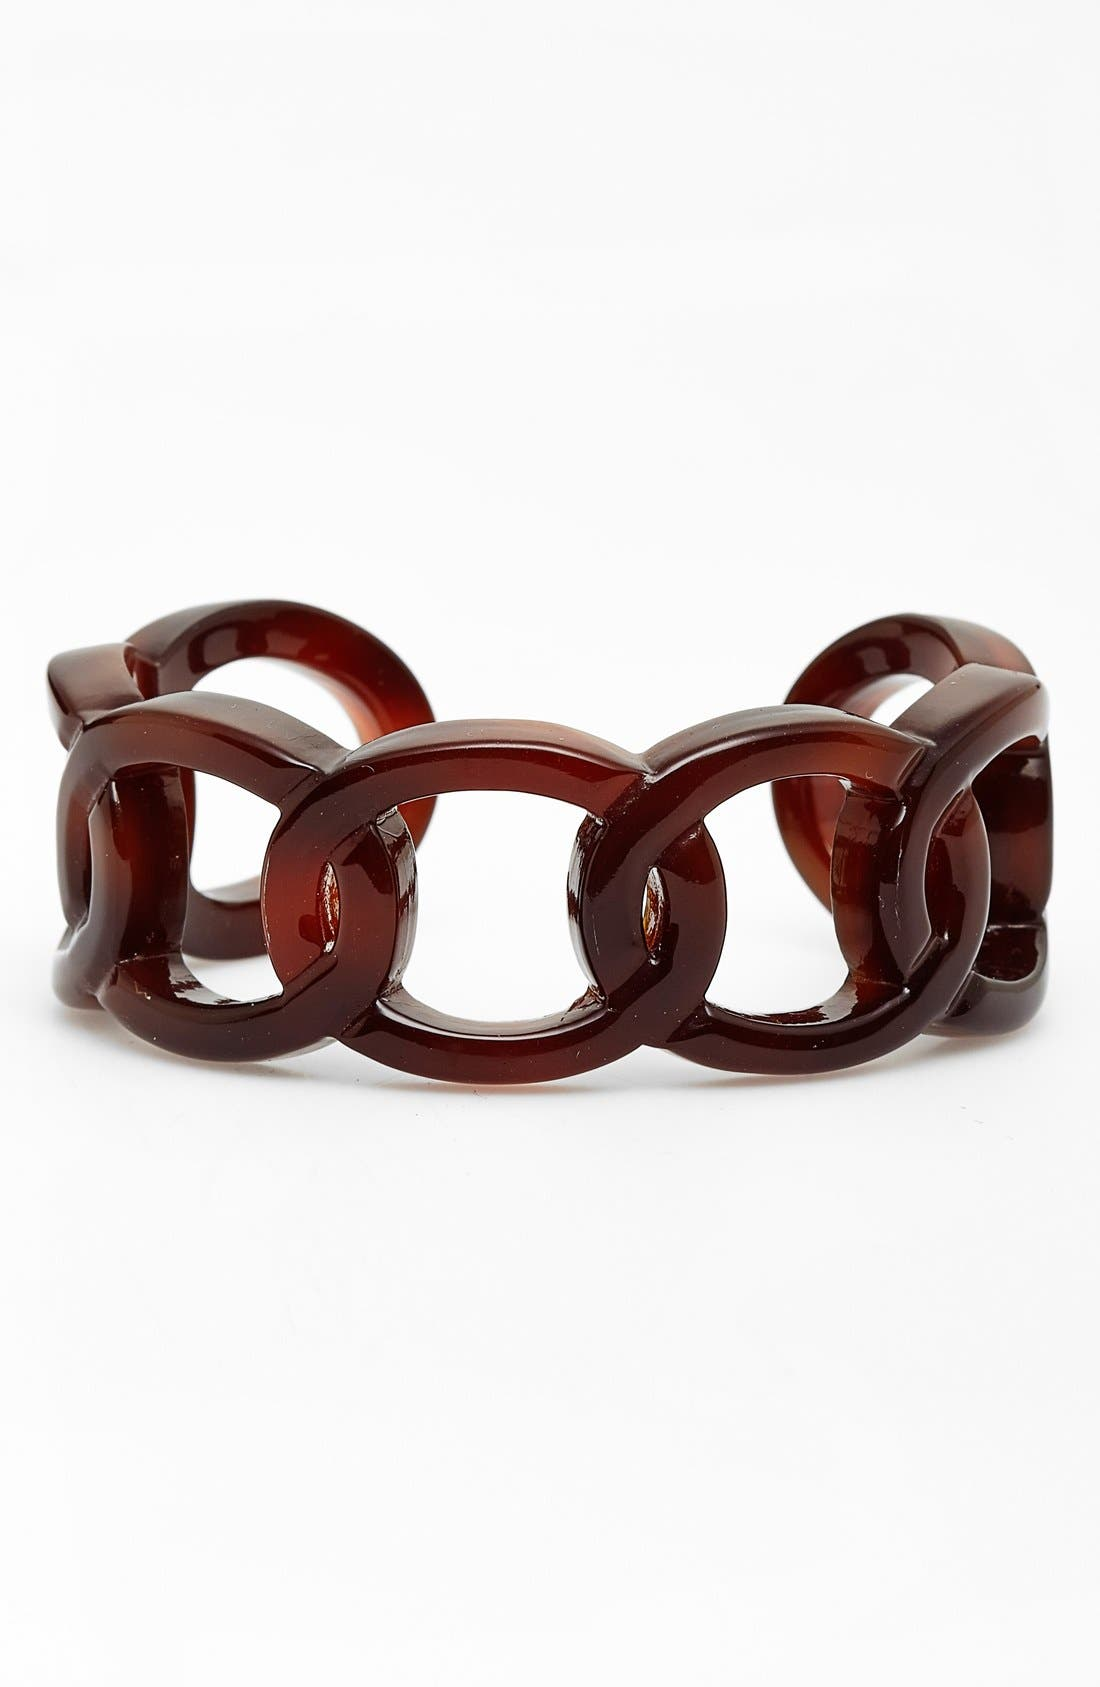 Alternate Image 1 Selected - L. Erickson 'Layla' Link Cuff